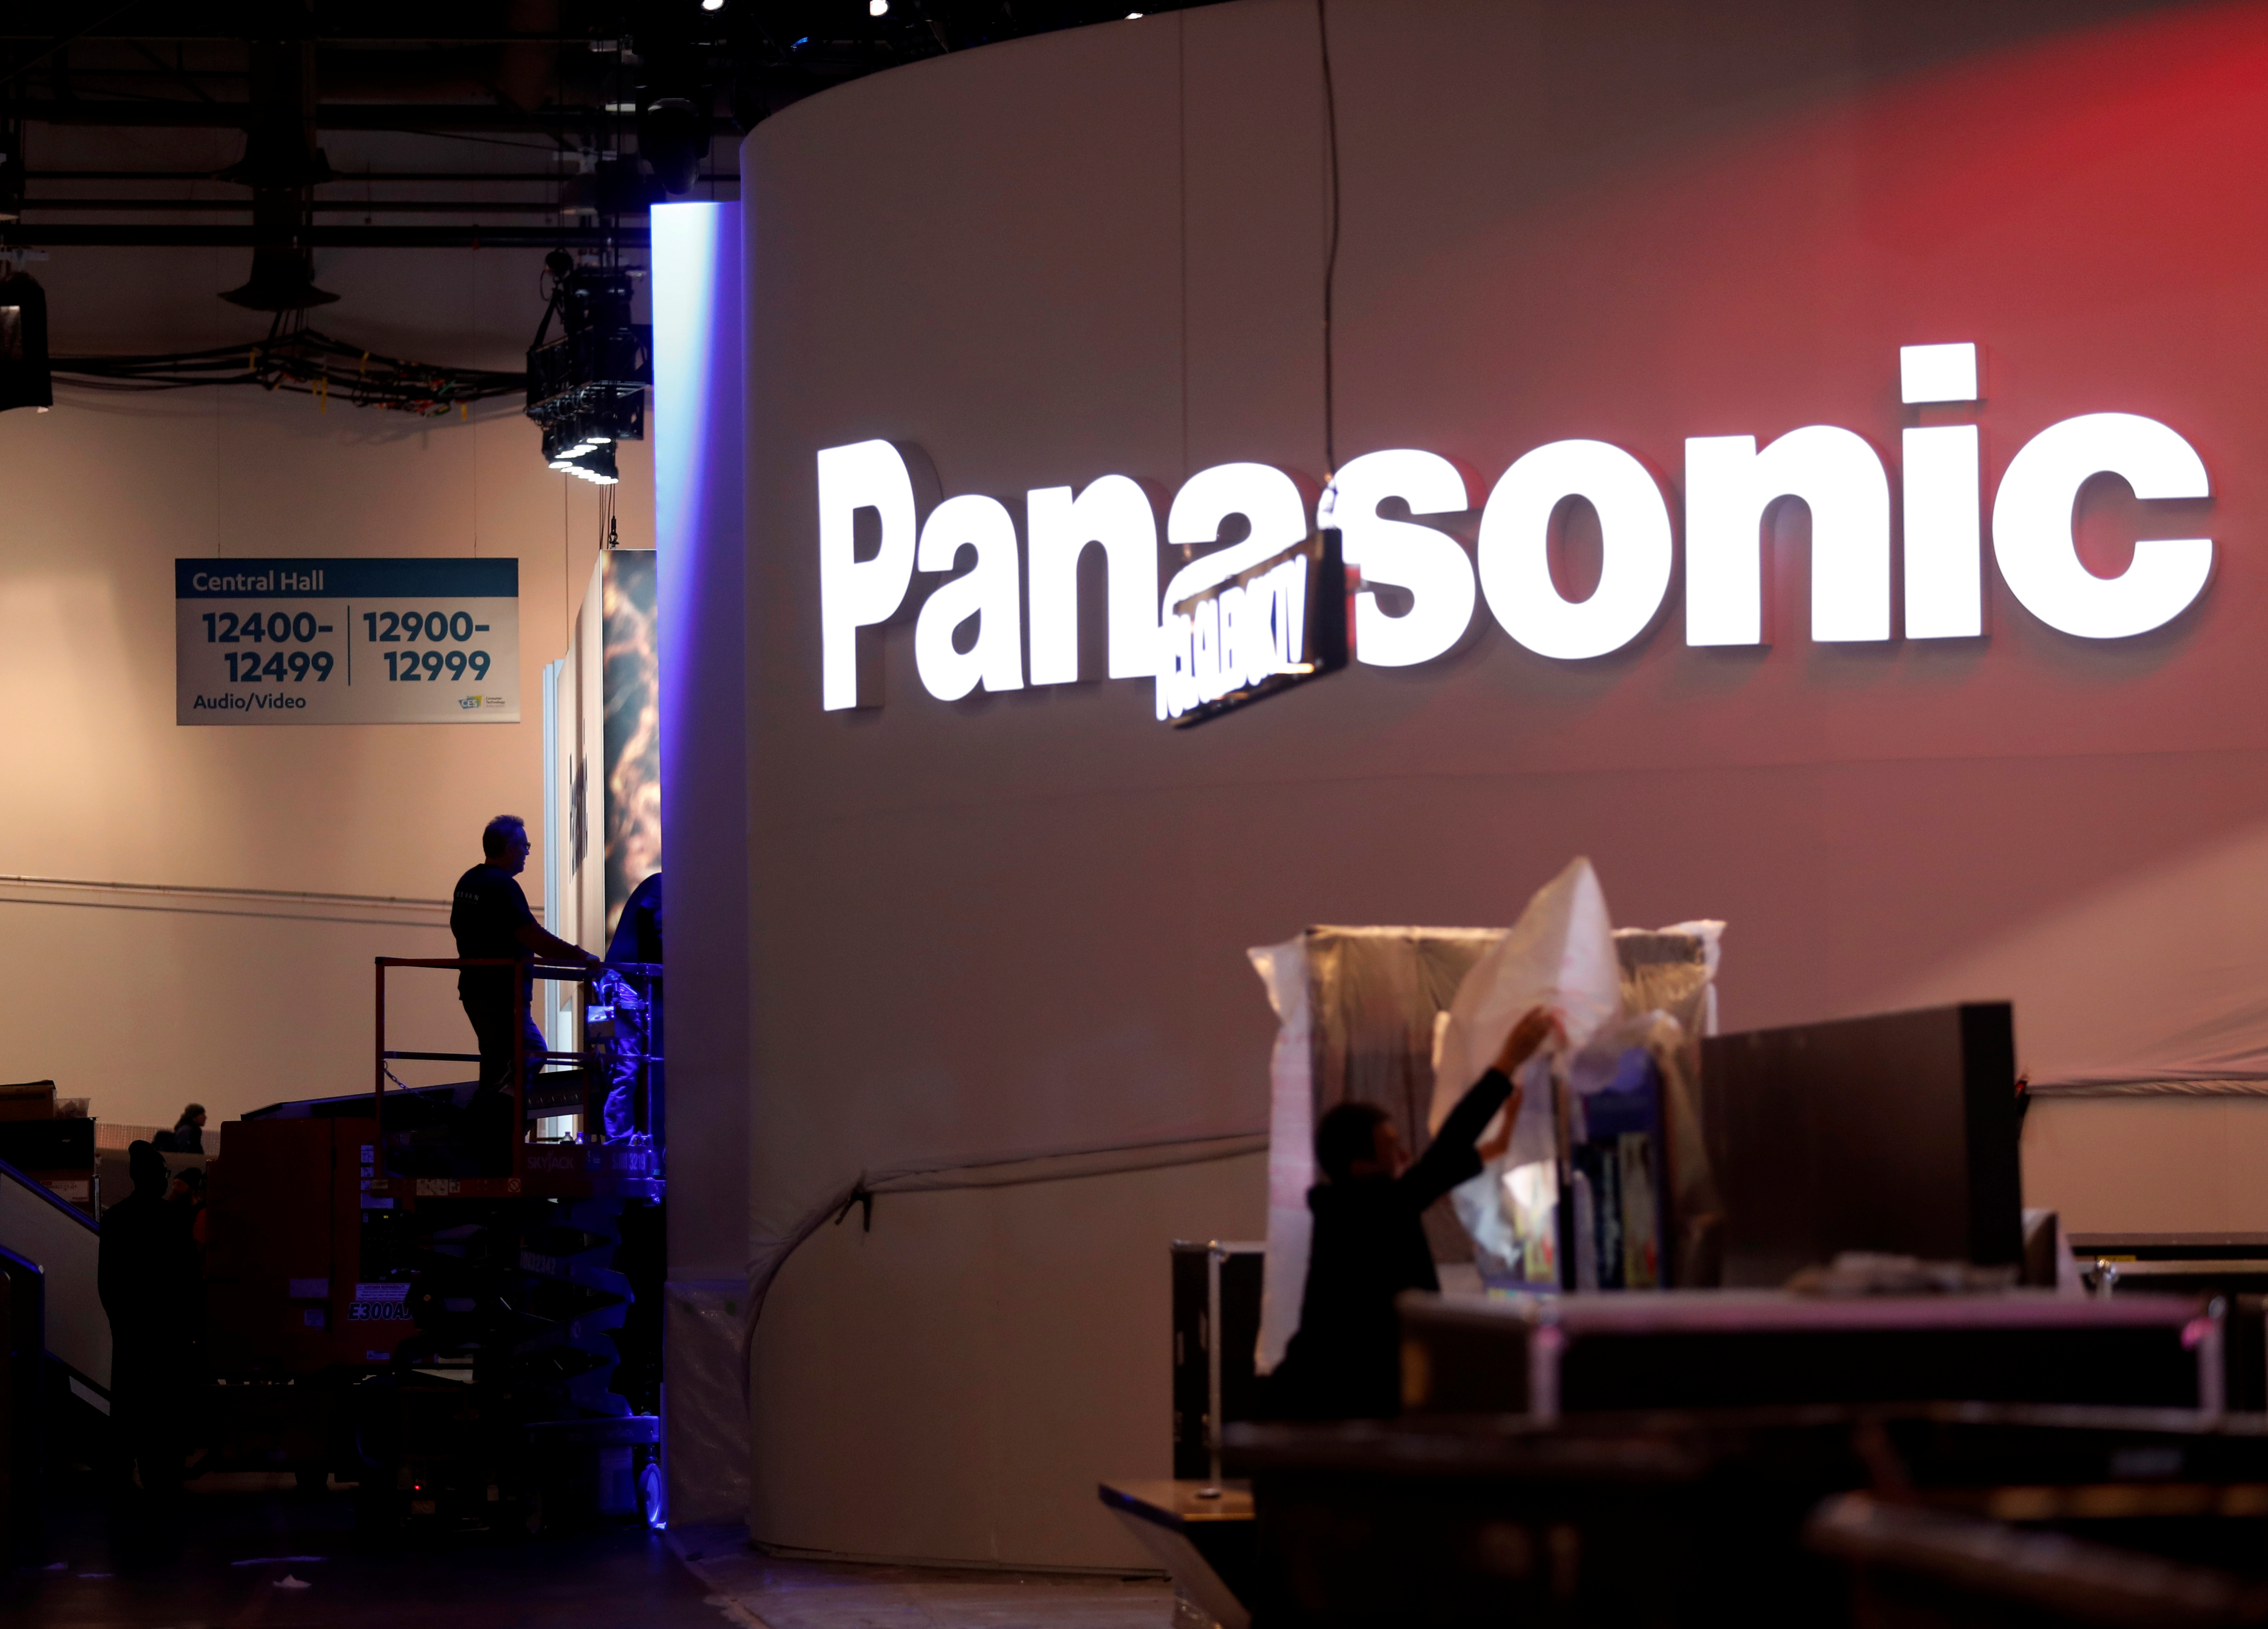 Workers set up a Panasonic booth at the Las Vegas Convention Center in preparation for 2019 CES in Las Vegas, Nevada, U.S. January 6, 2019. REUTERS/Steve Marcus